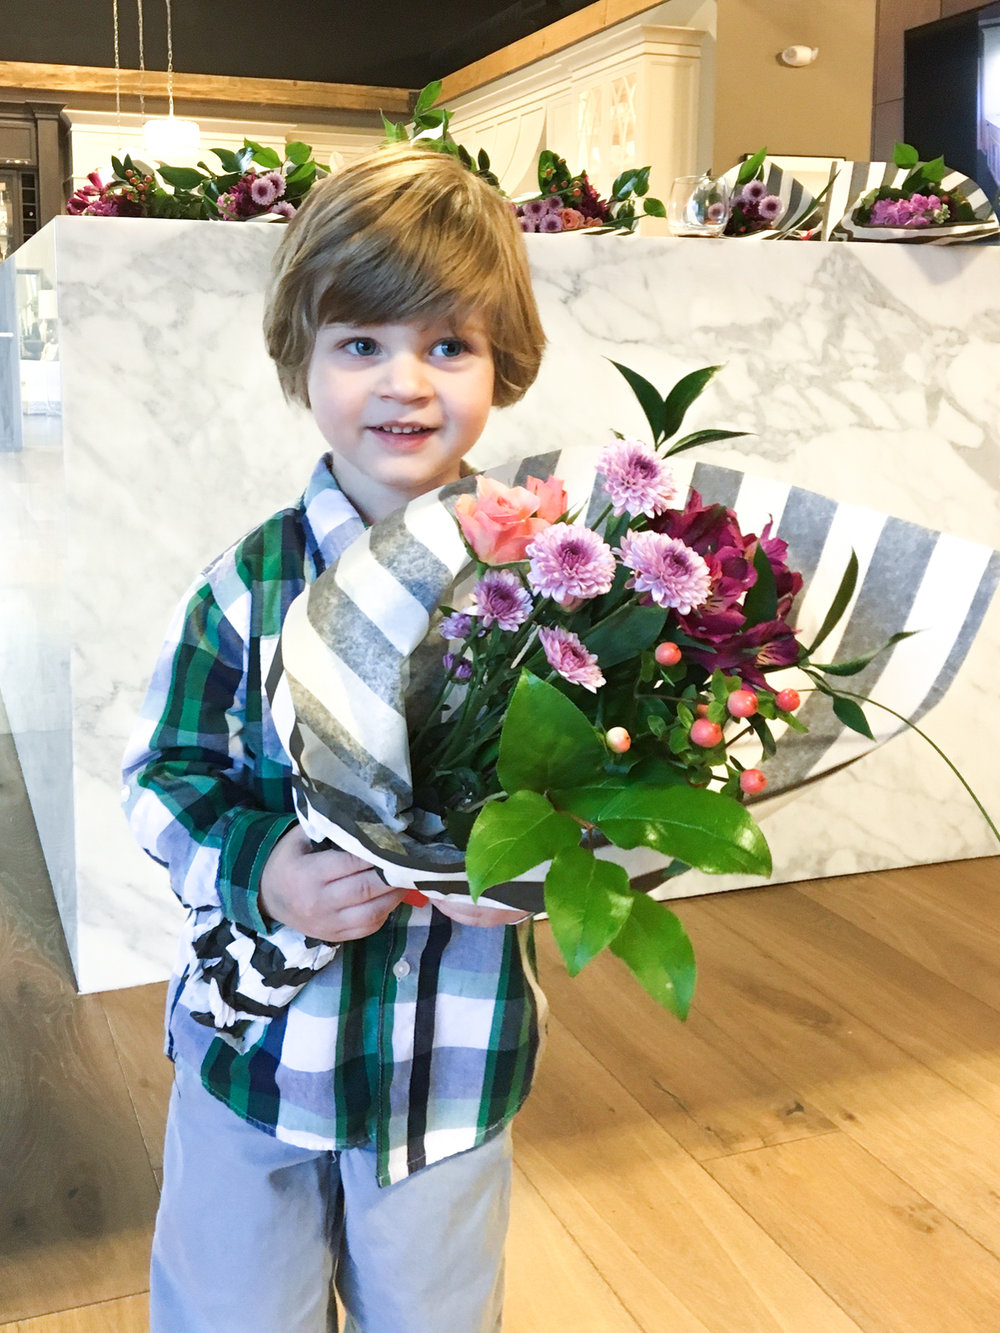 Who can resist flowers from this little cutie?